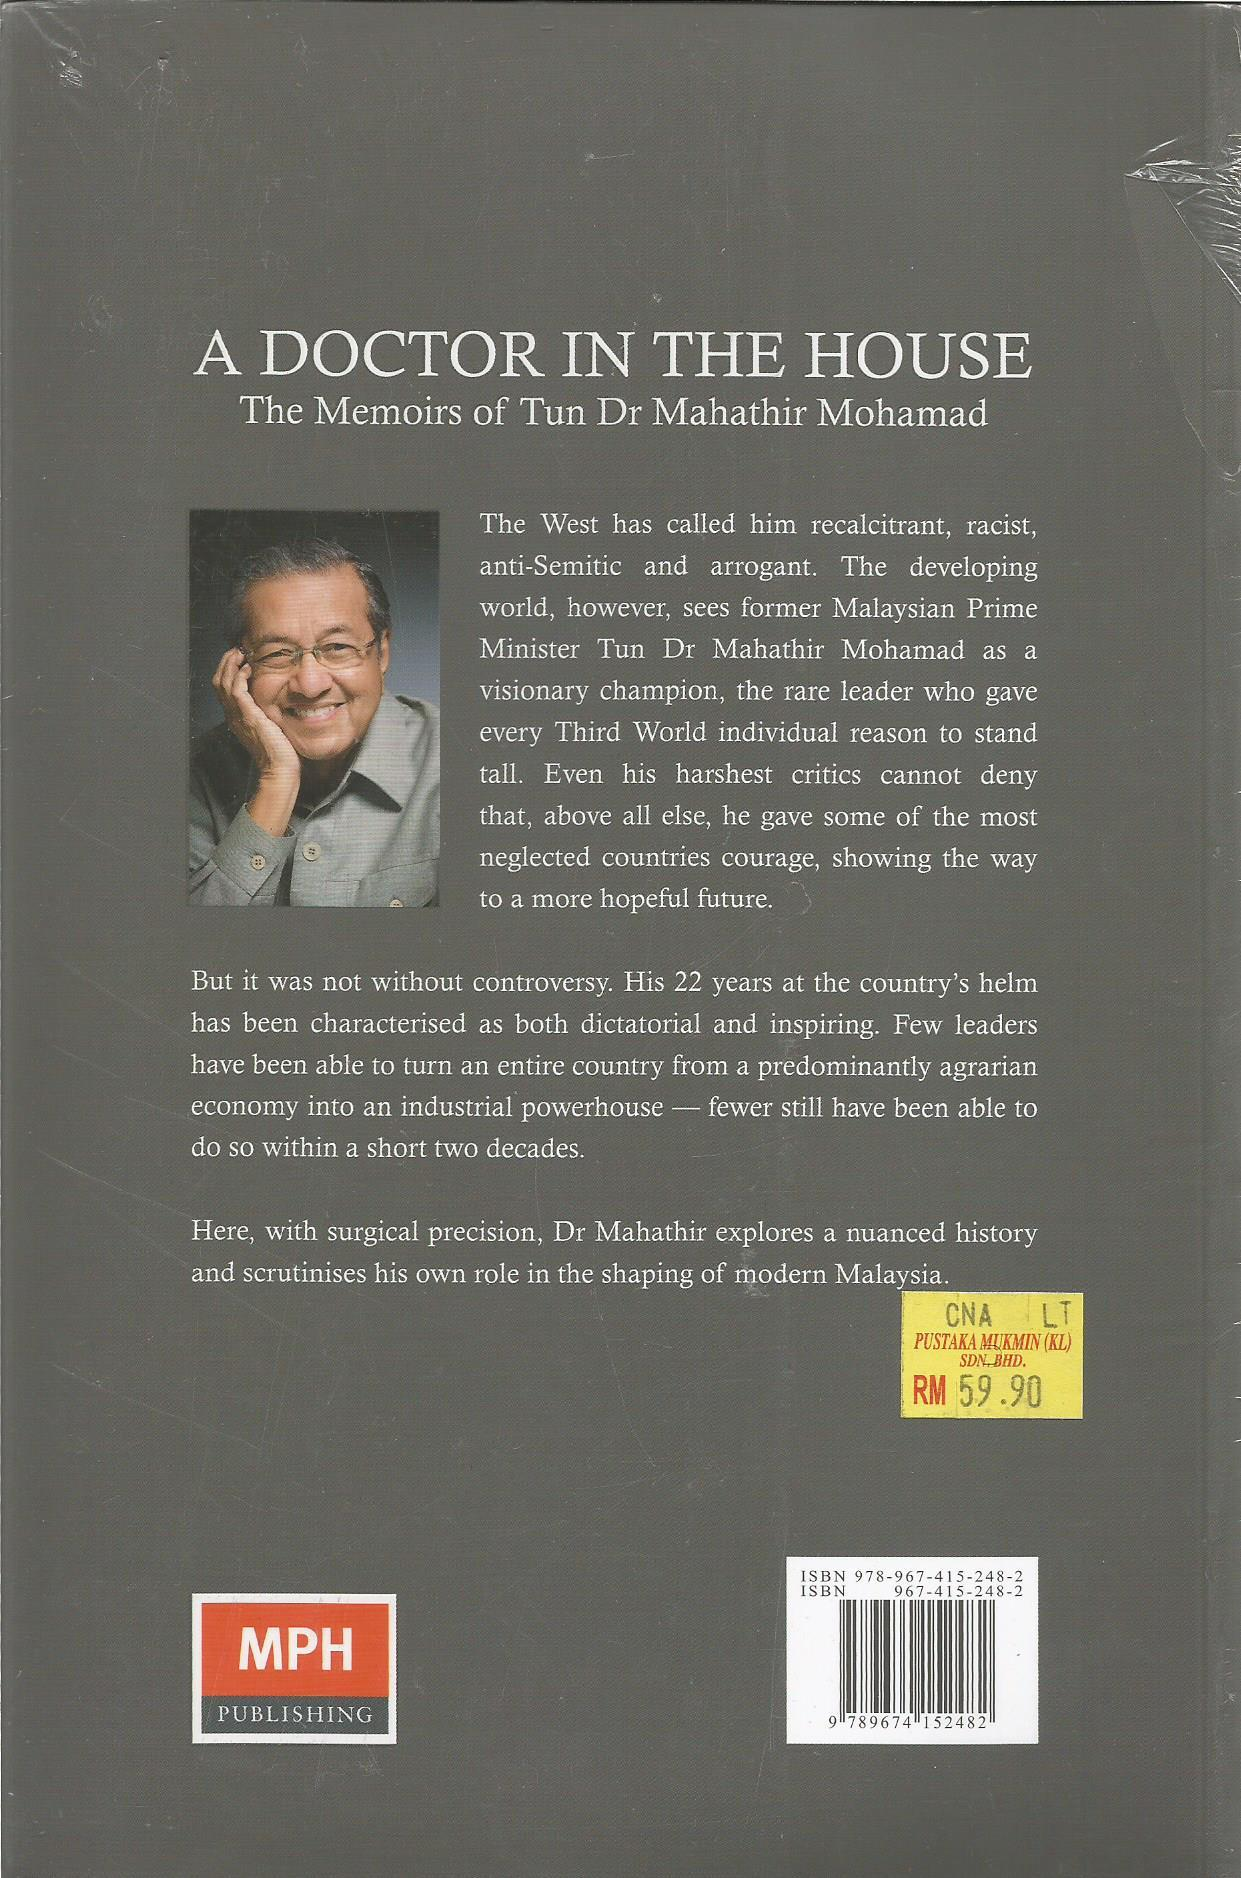 doctor in the house rm59.9 1.50002.jpg